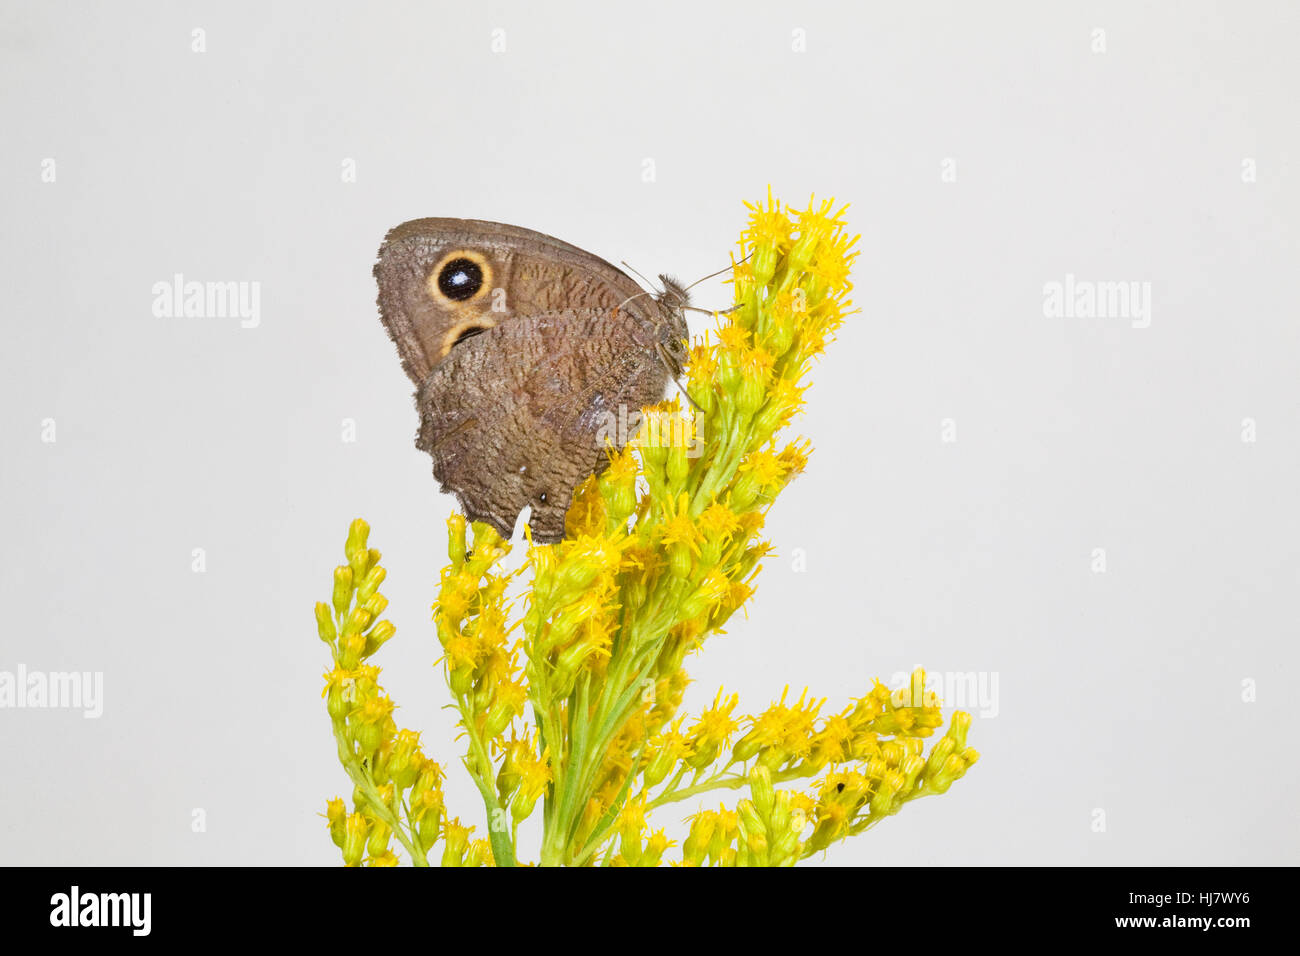 A common wood nymph butterfly, Cercyonis pegala, on a brightly colored wildflower along the Metolius River in Oregon - Stock Image